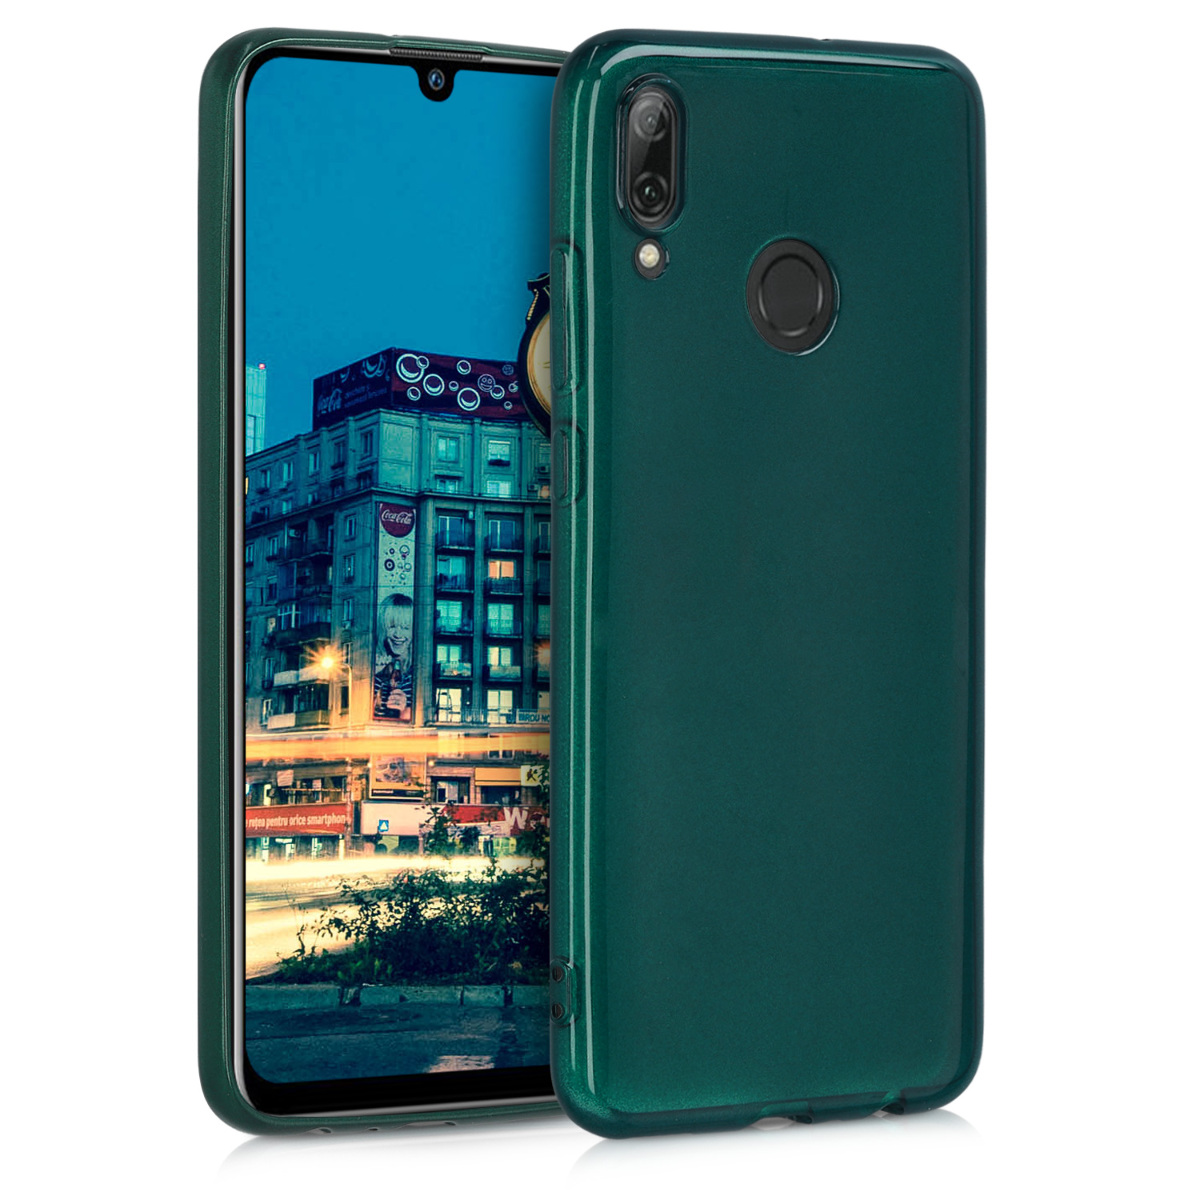 KW Θήκη Σιλικόνη Huawei P Smart (2019) - Soft Flexible Shock Absorbent - Teal High Gloss (47386.131)